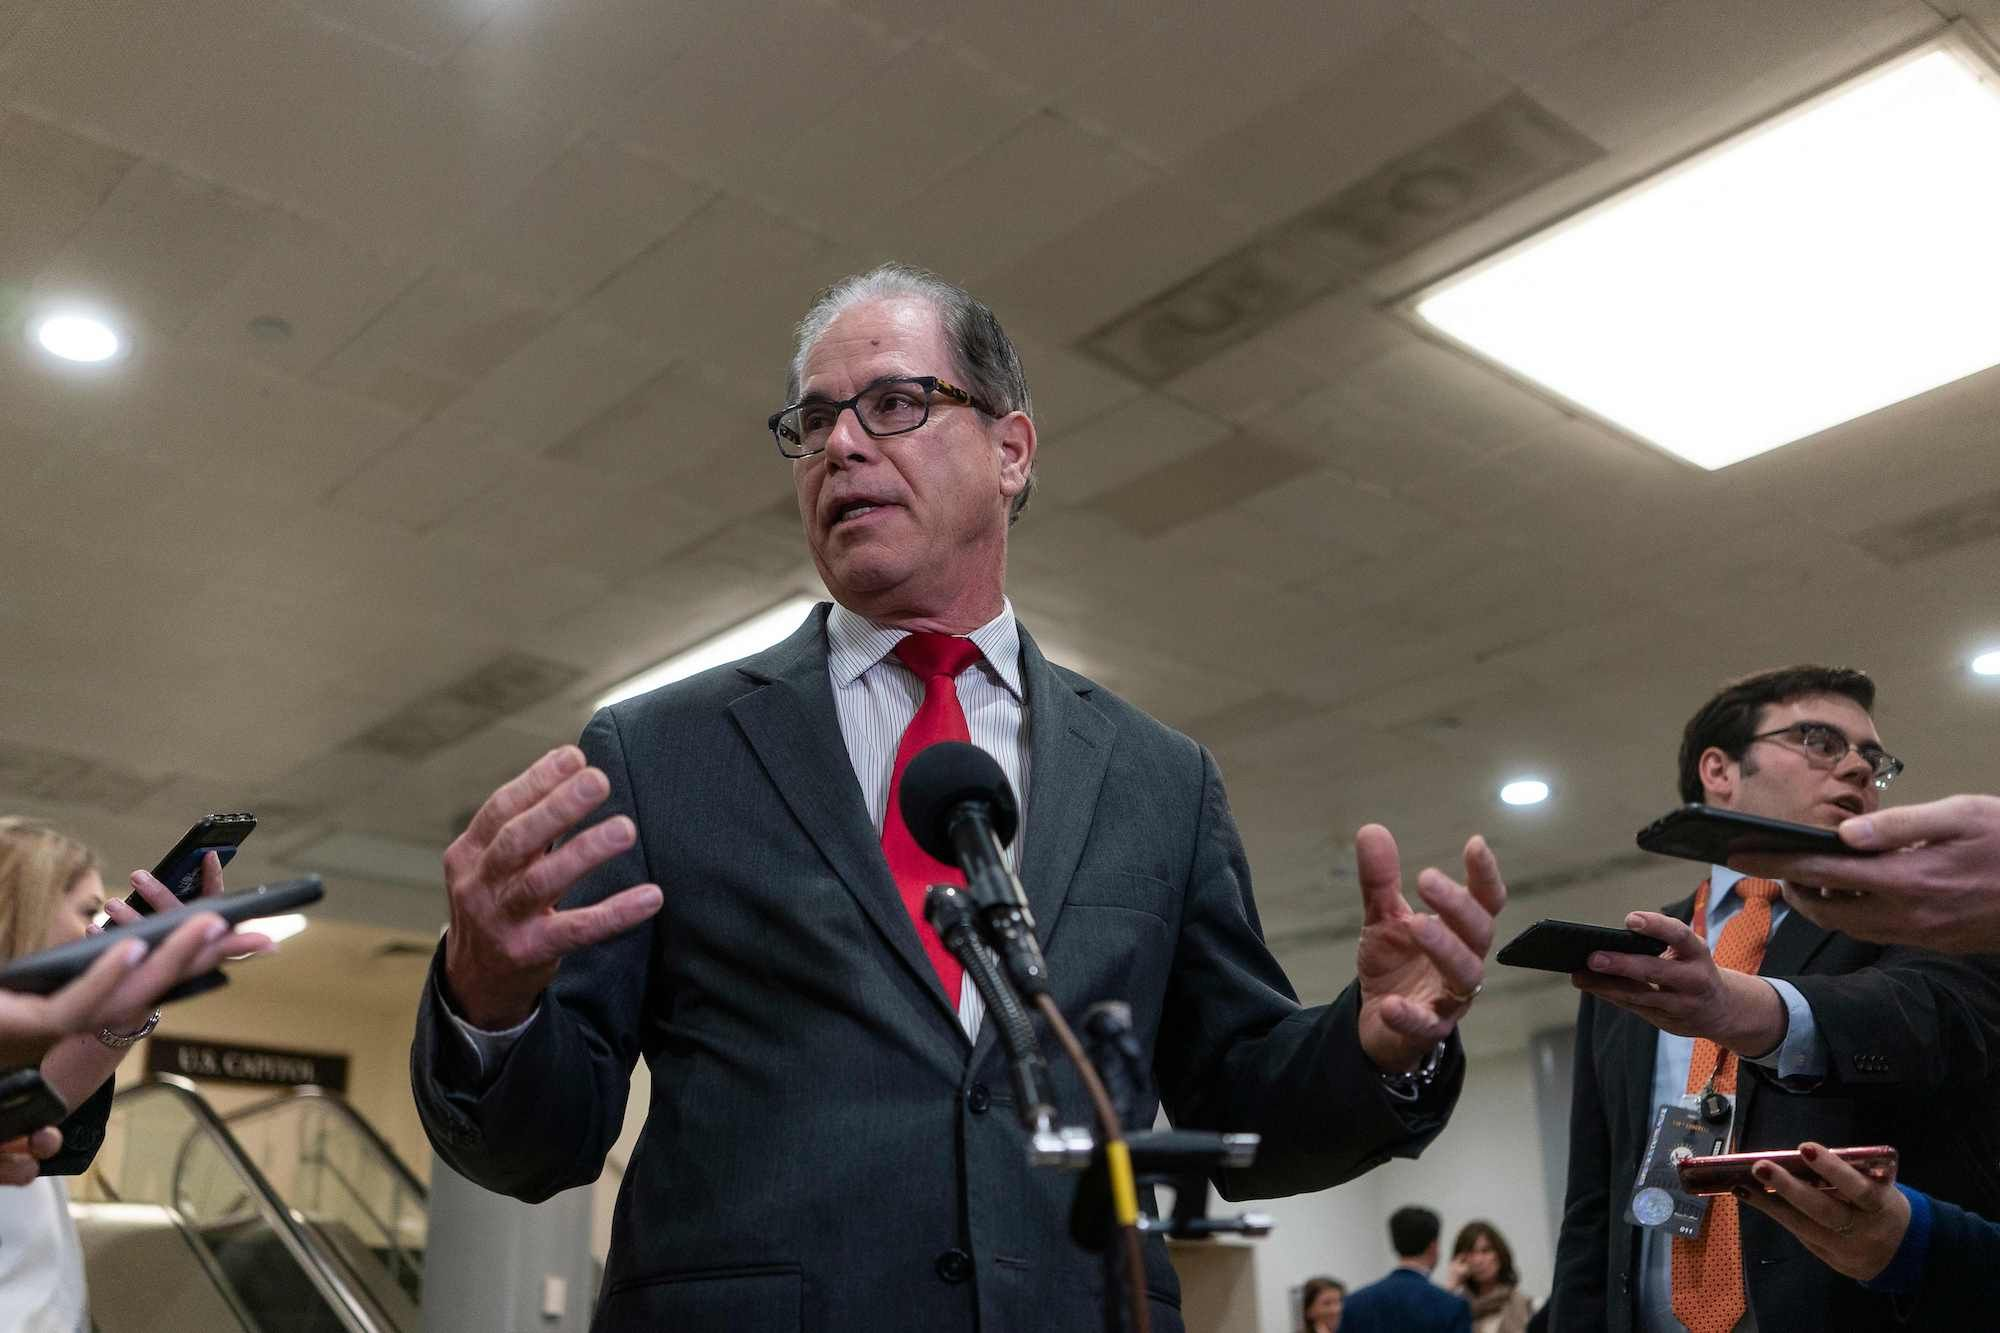 Mike Braun Appeared Out of Nowhere to Join Trump's Impeachment Fire Brigade